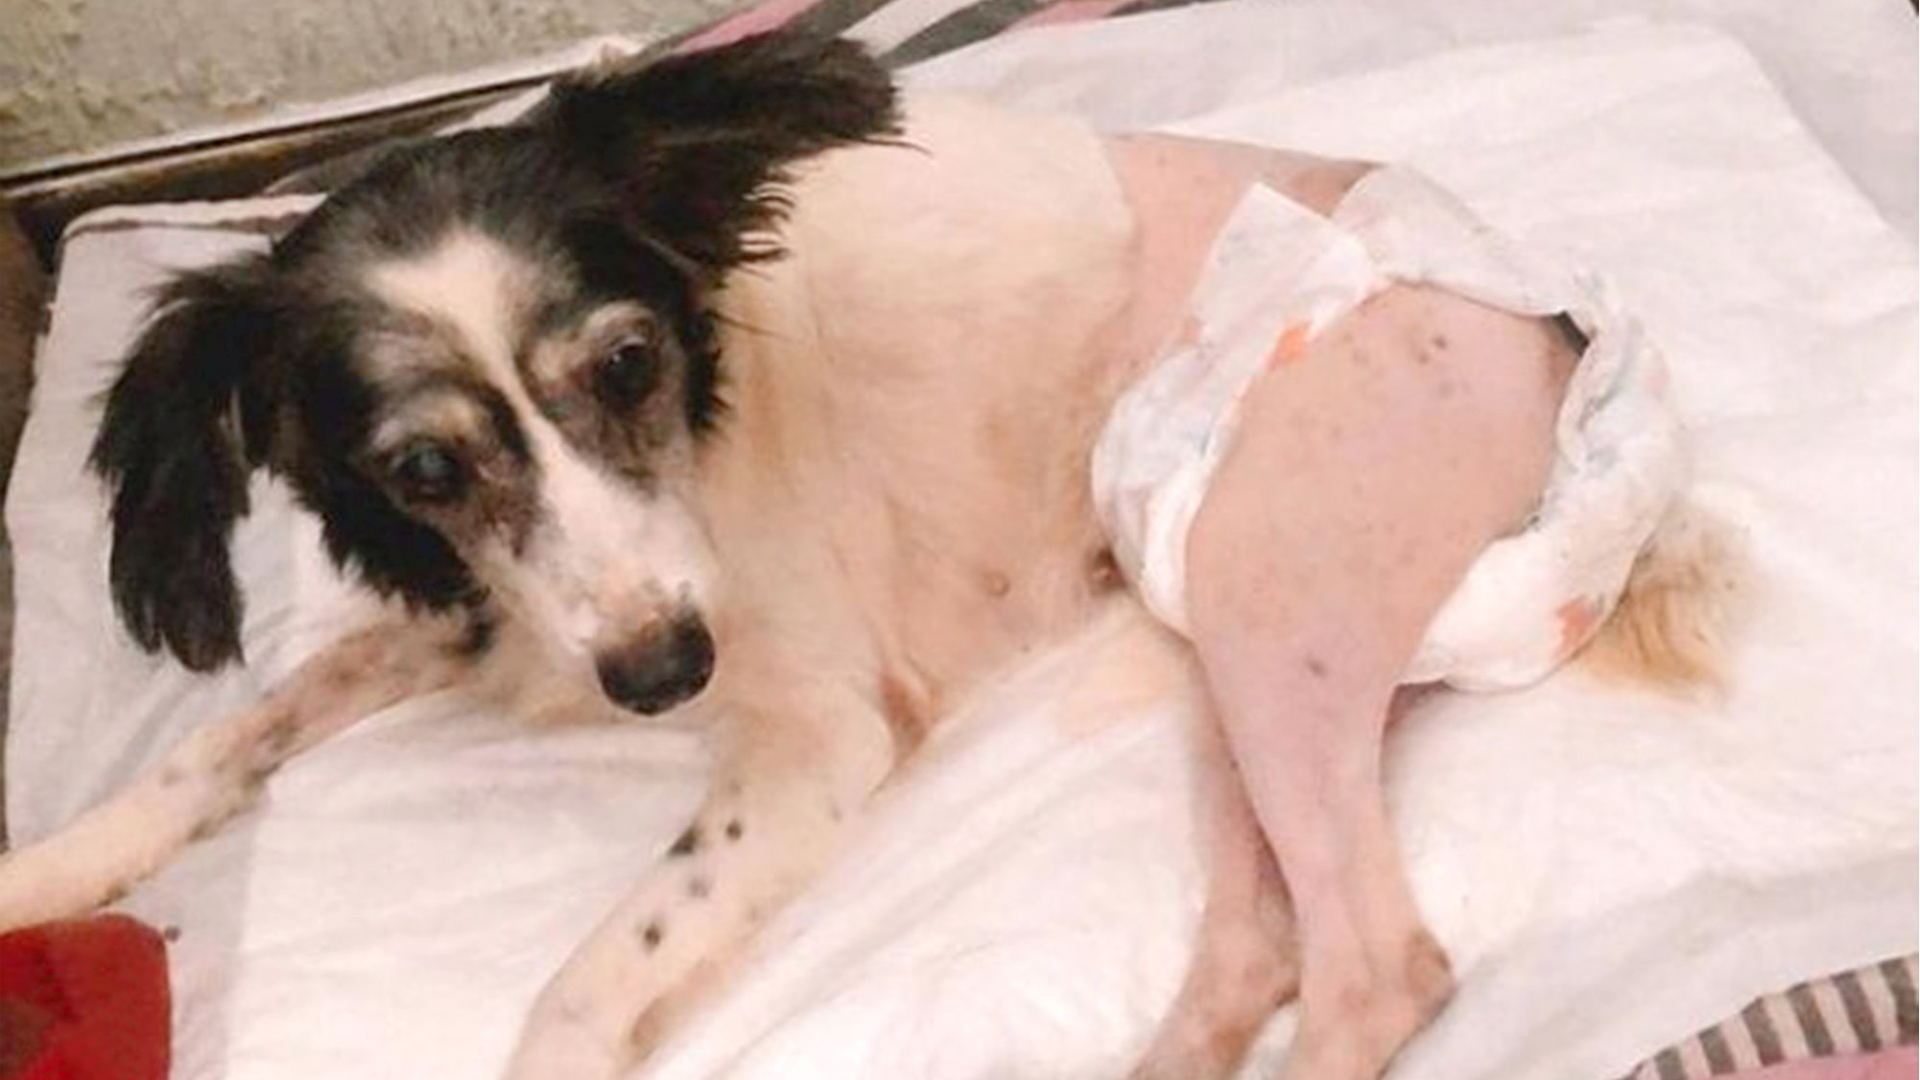 VIDEO: Dog Learns To Walk Again After Cruel Driver Runs It Over In Street - Zenger News